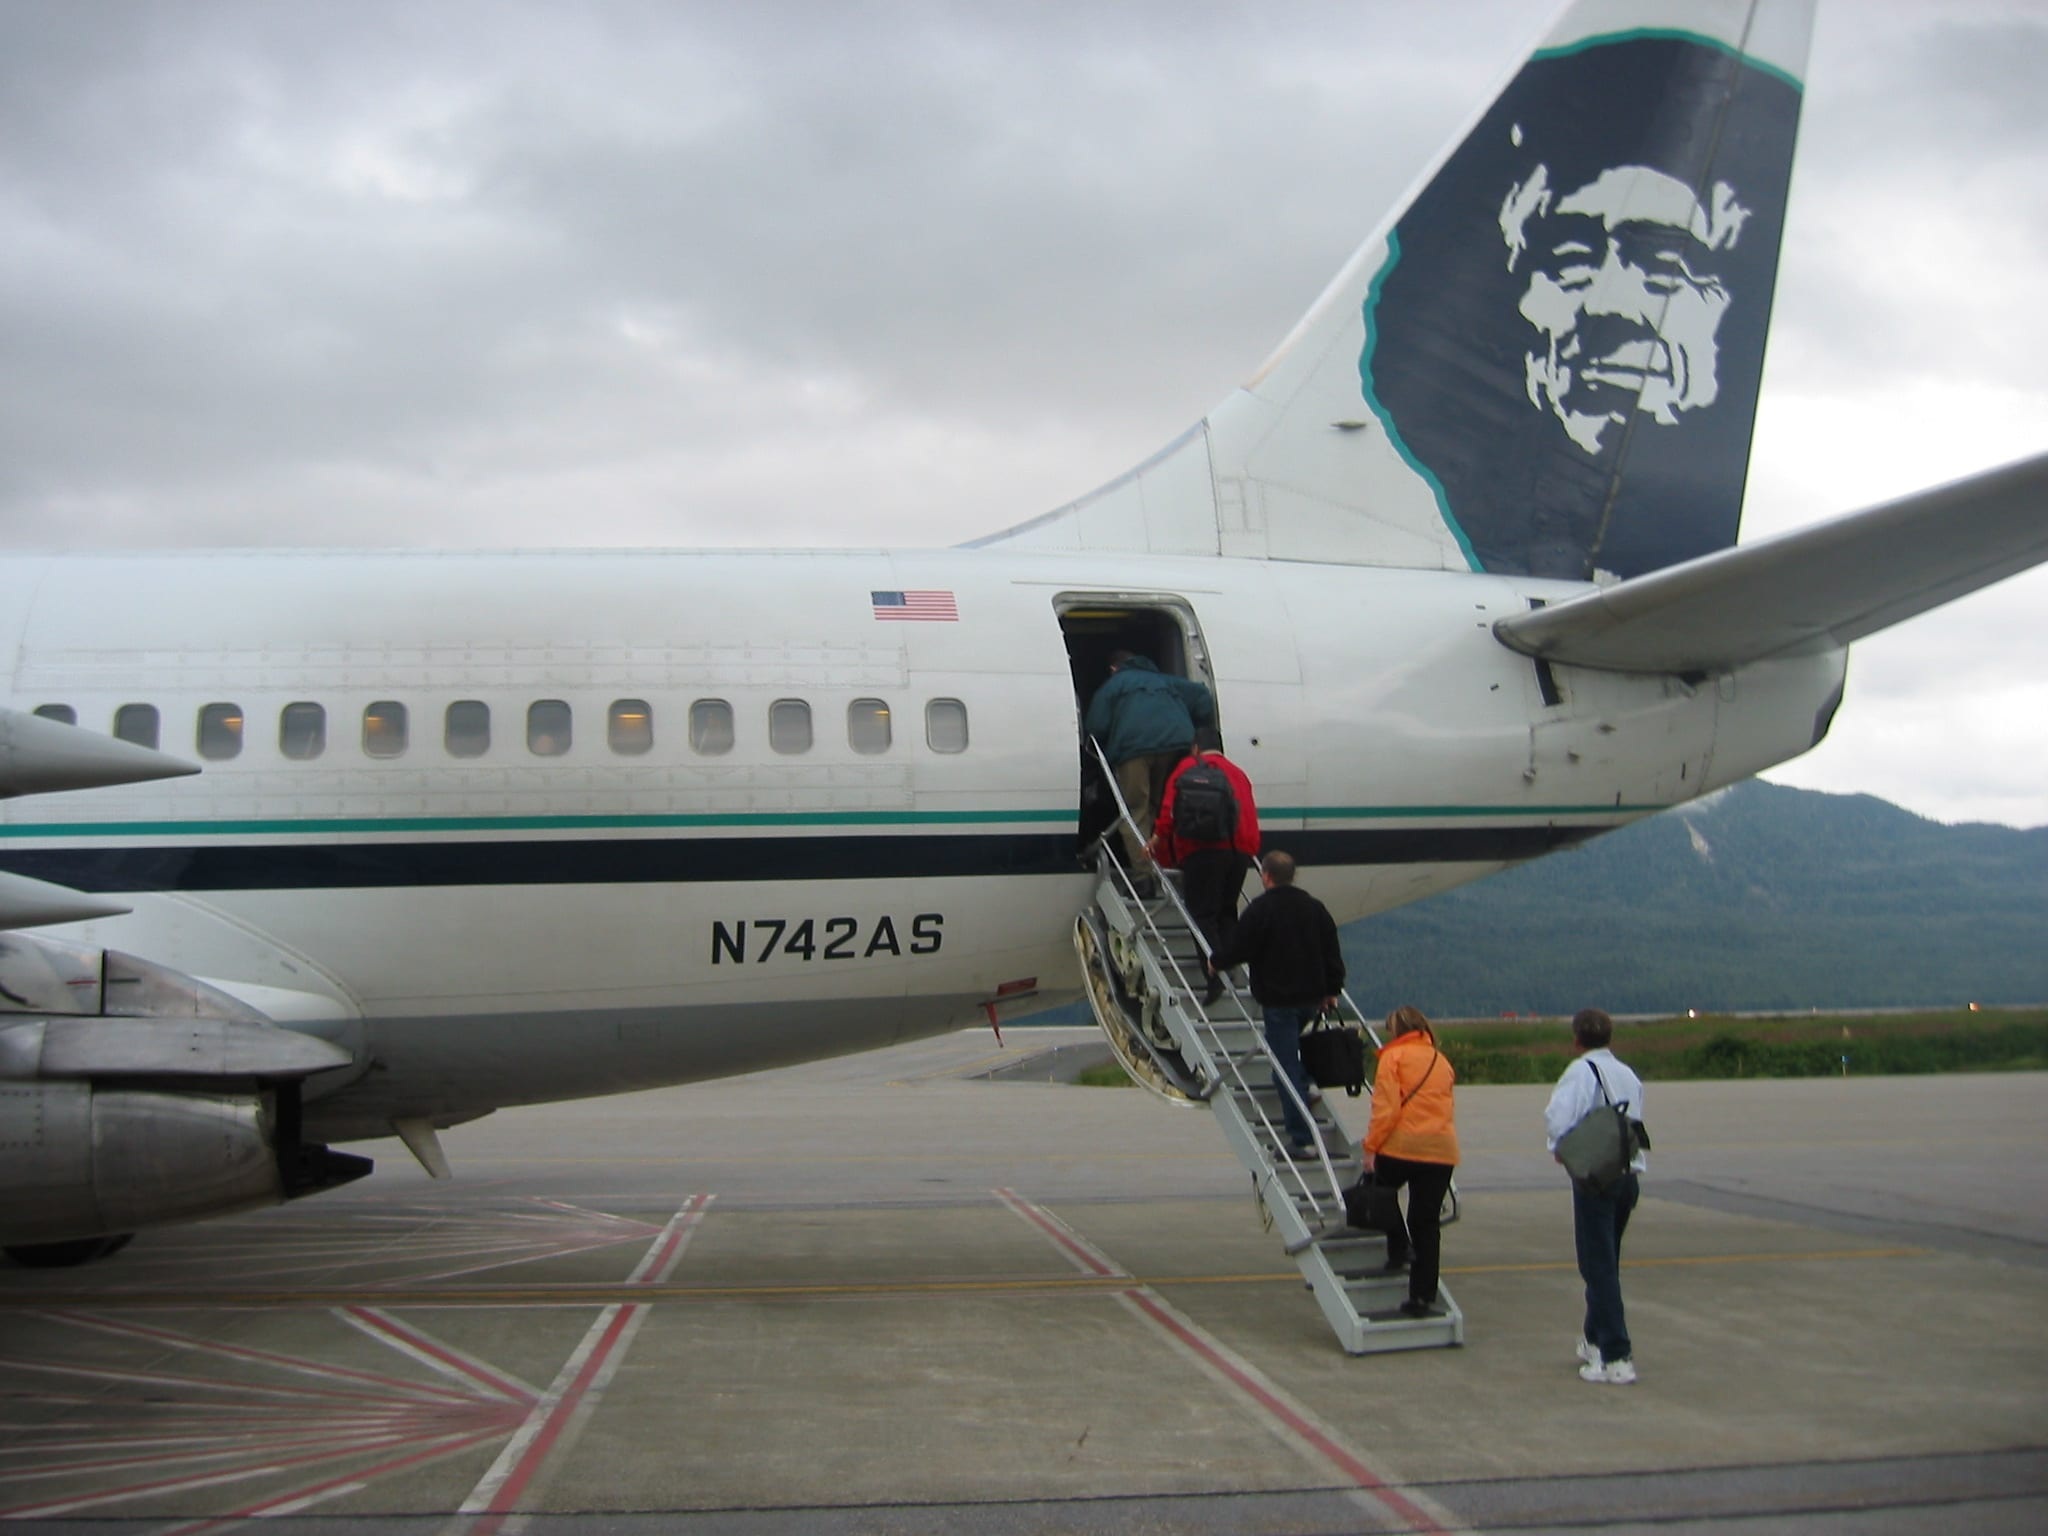 Passengers Board An Alaska Airlines Combi Plane By Stairs.